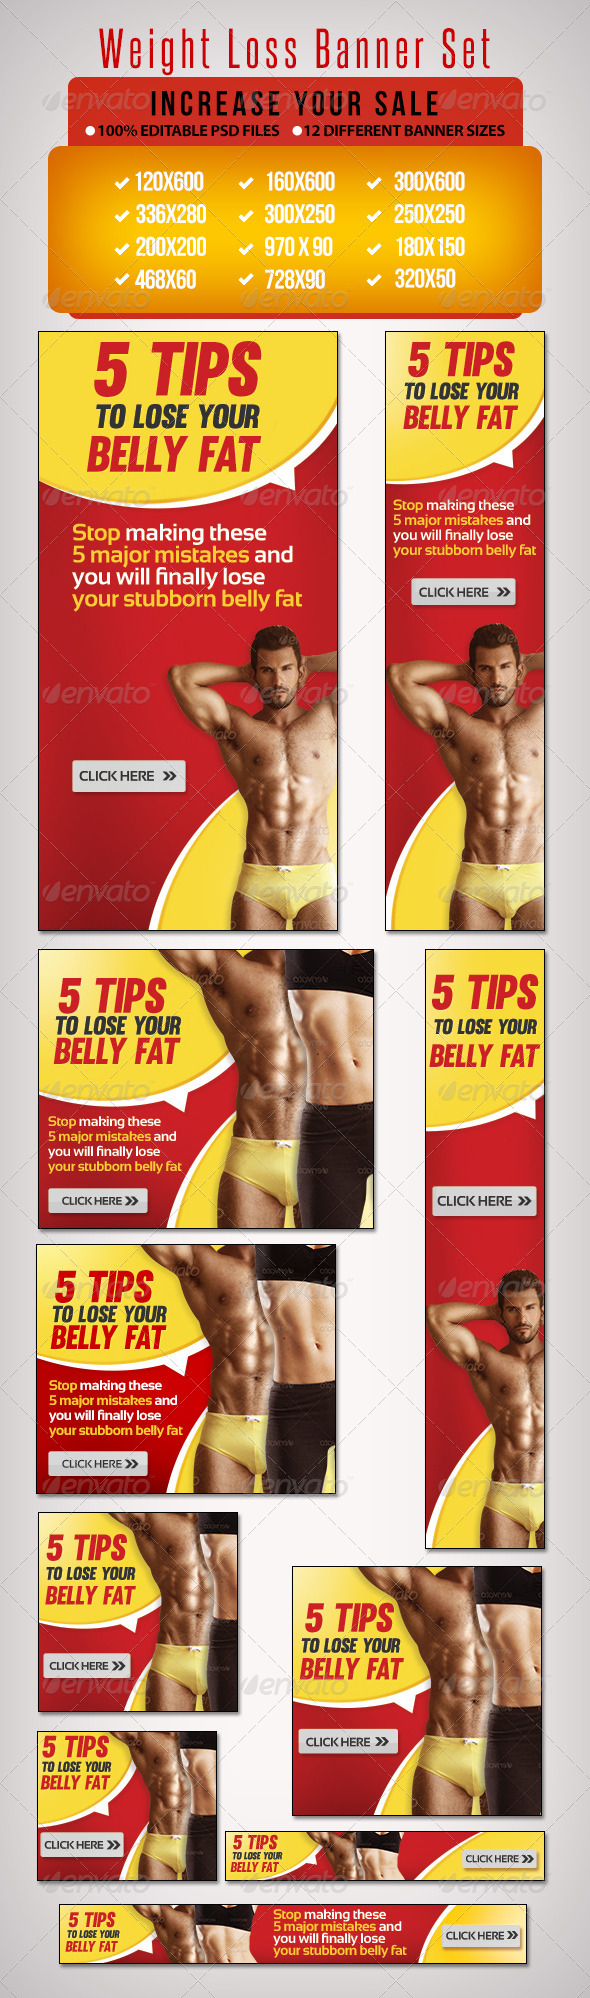 GraphicRiver Weight Loss Banner Set 7 6665542